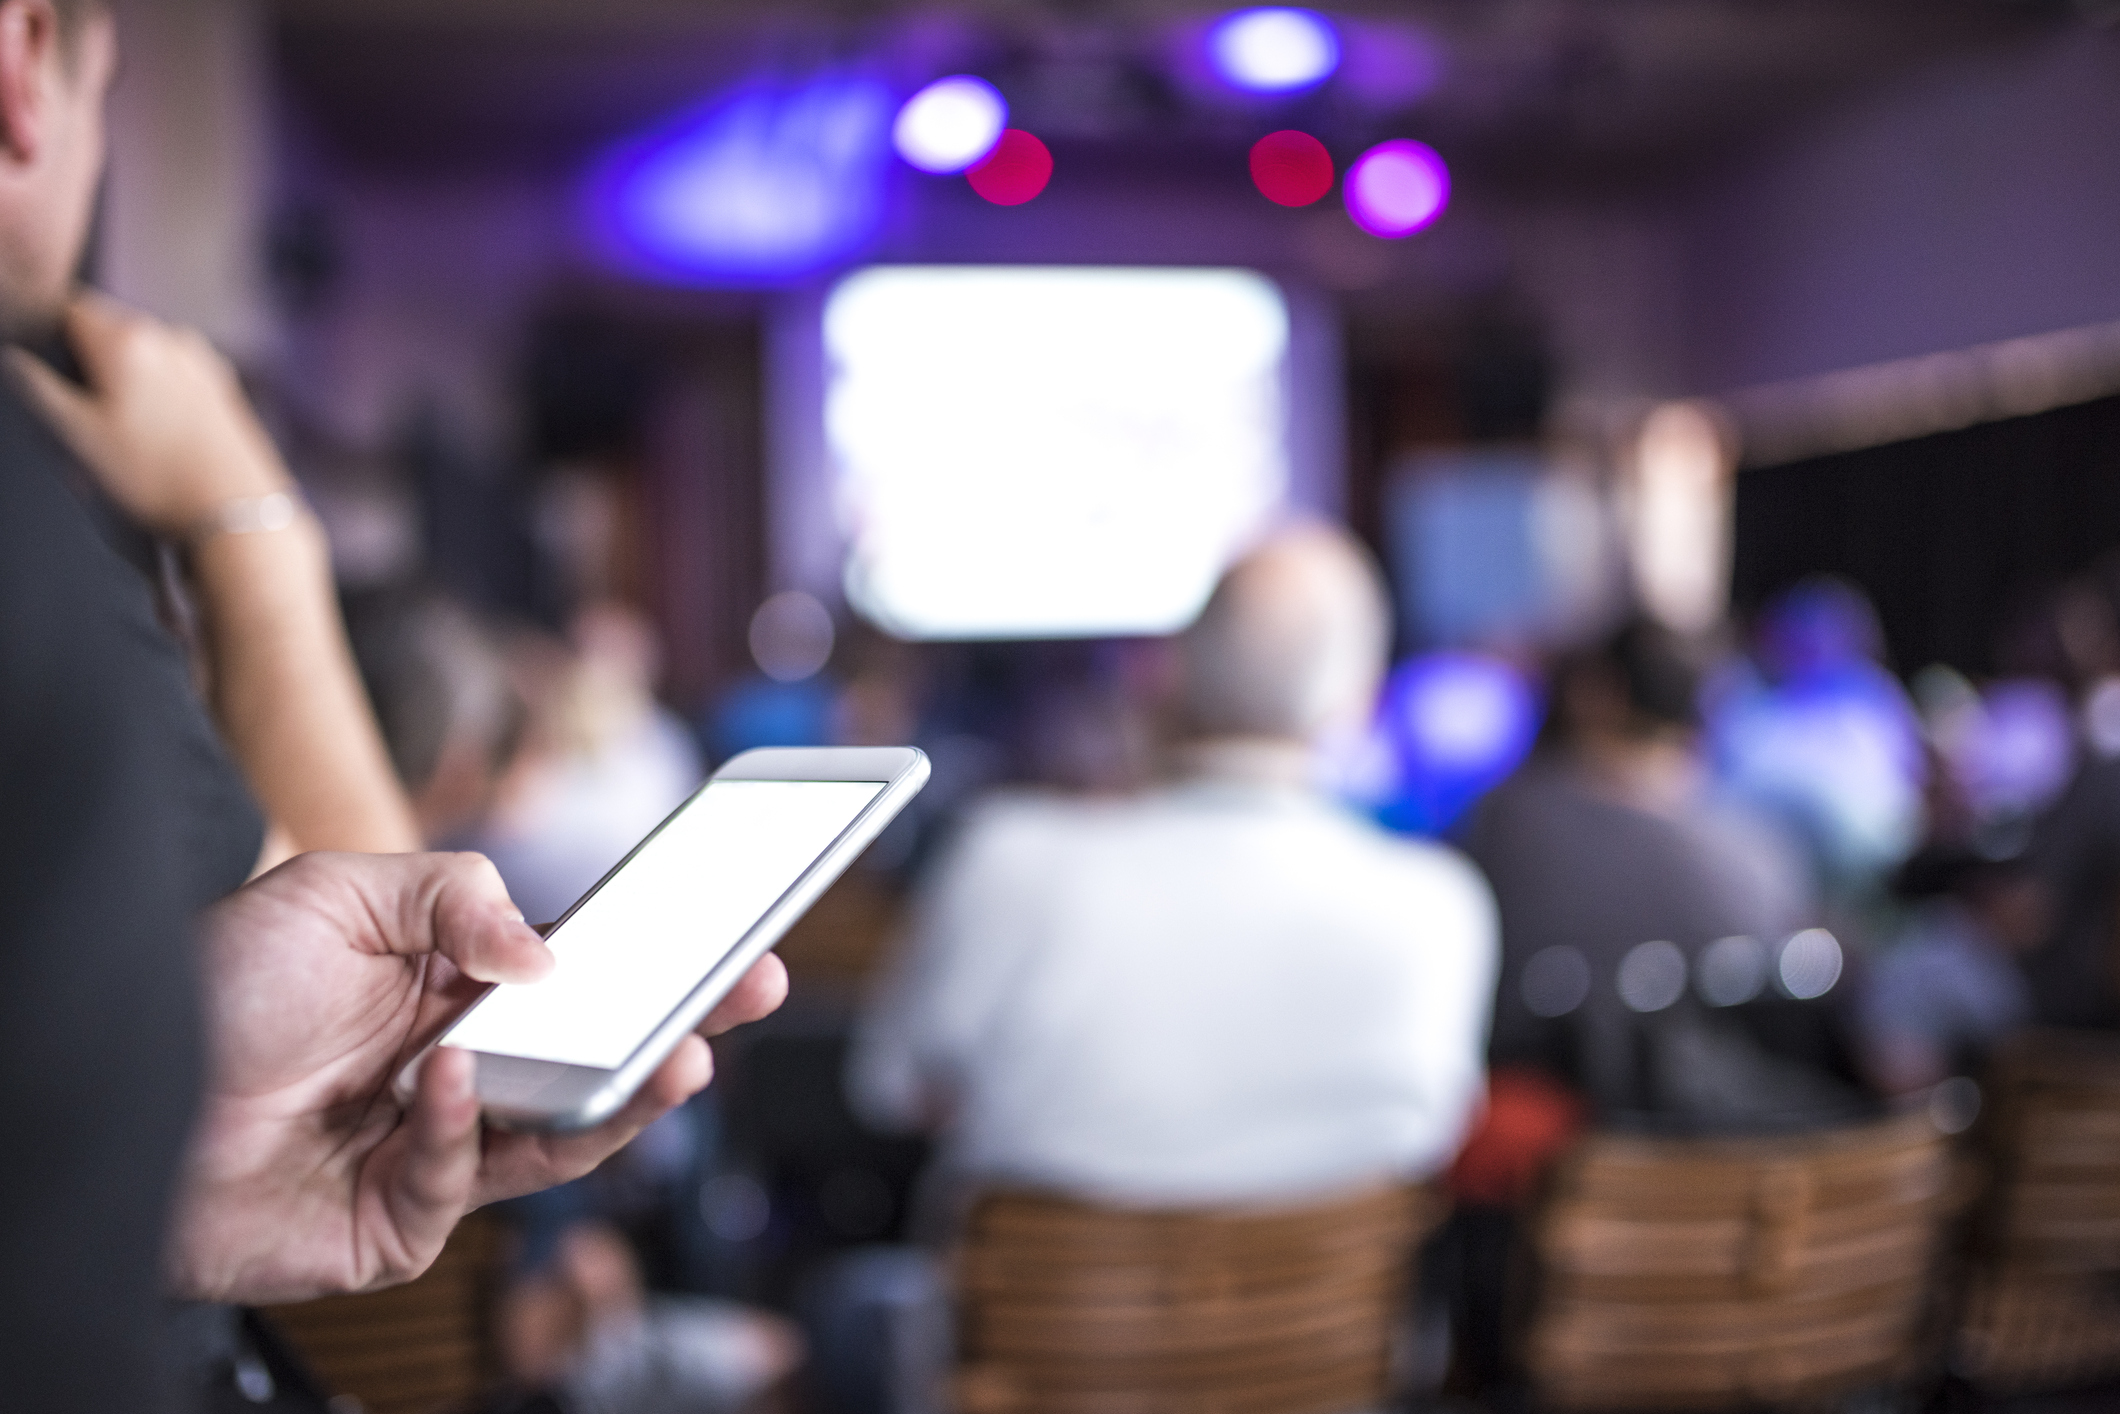 Natural Networking - Event attendees often escape to their phones, missing out on opportunities to connect to others.Our solution allows attendees to do what's natural for them while recommending conversations with other attendees without needing to open an app.